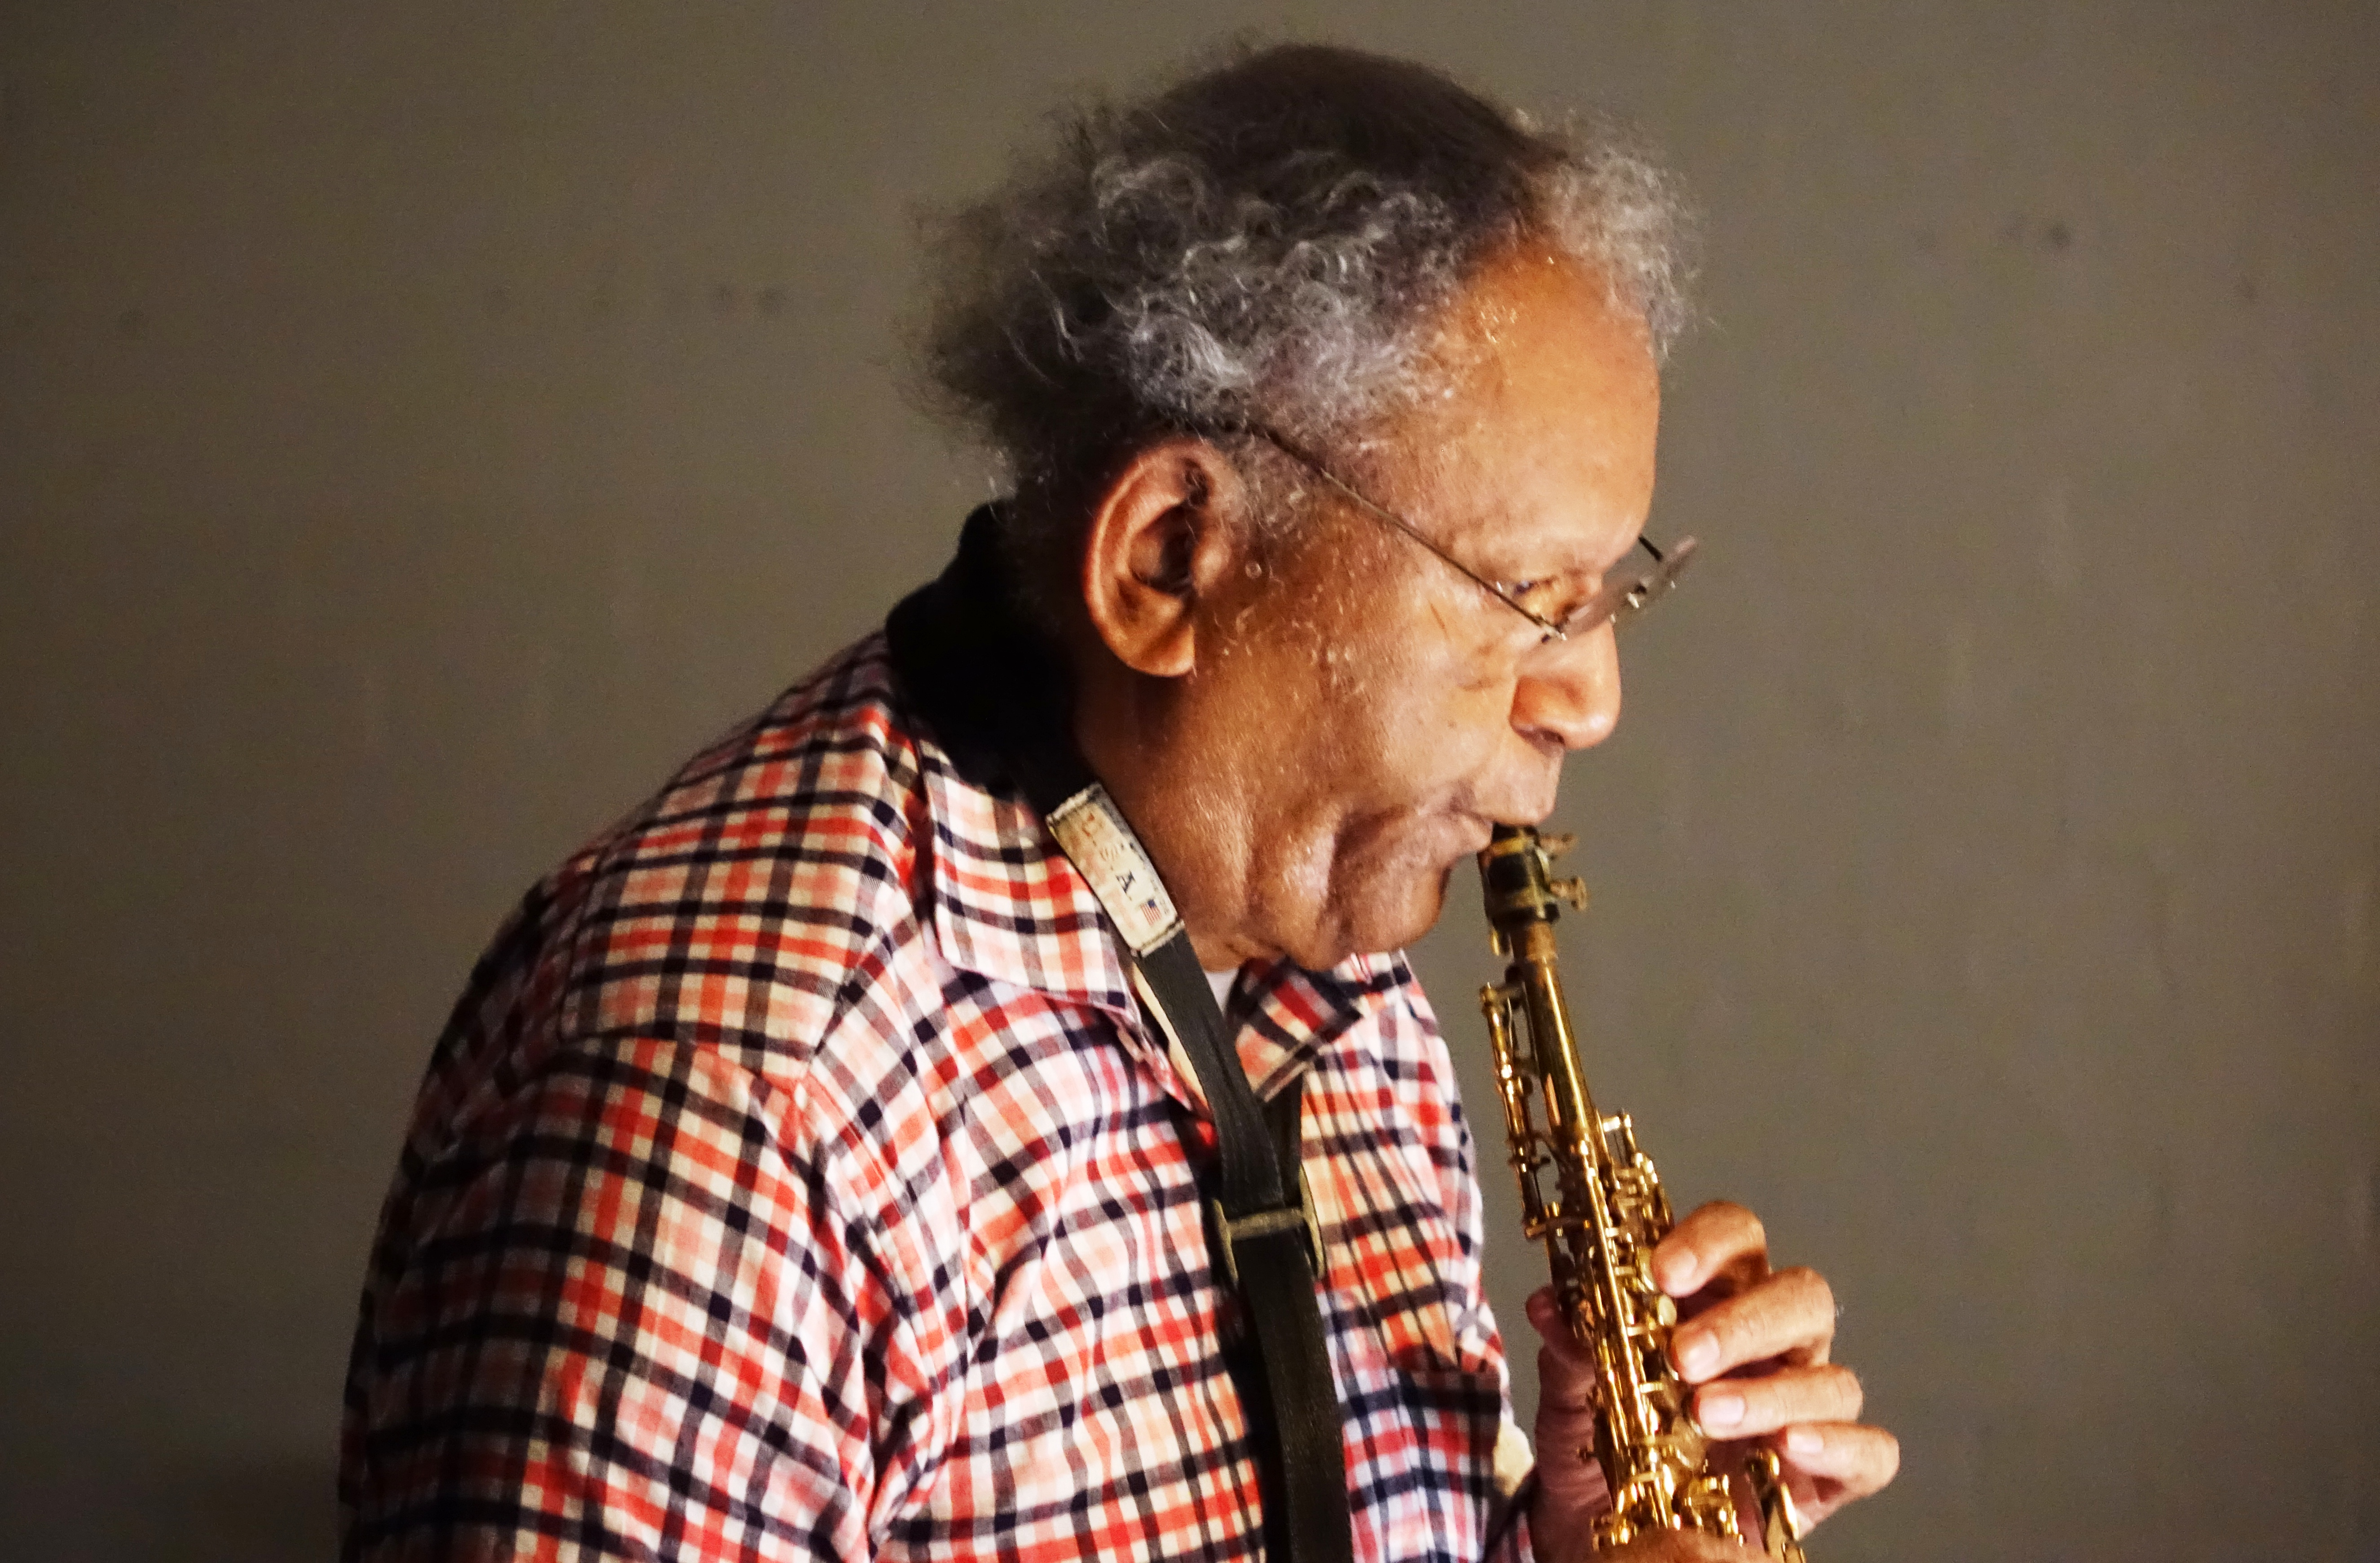 Anthony Braxton at Cafe Oto, London in May 2018